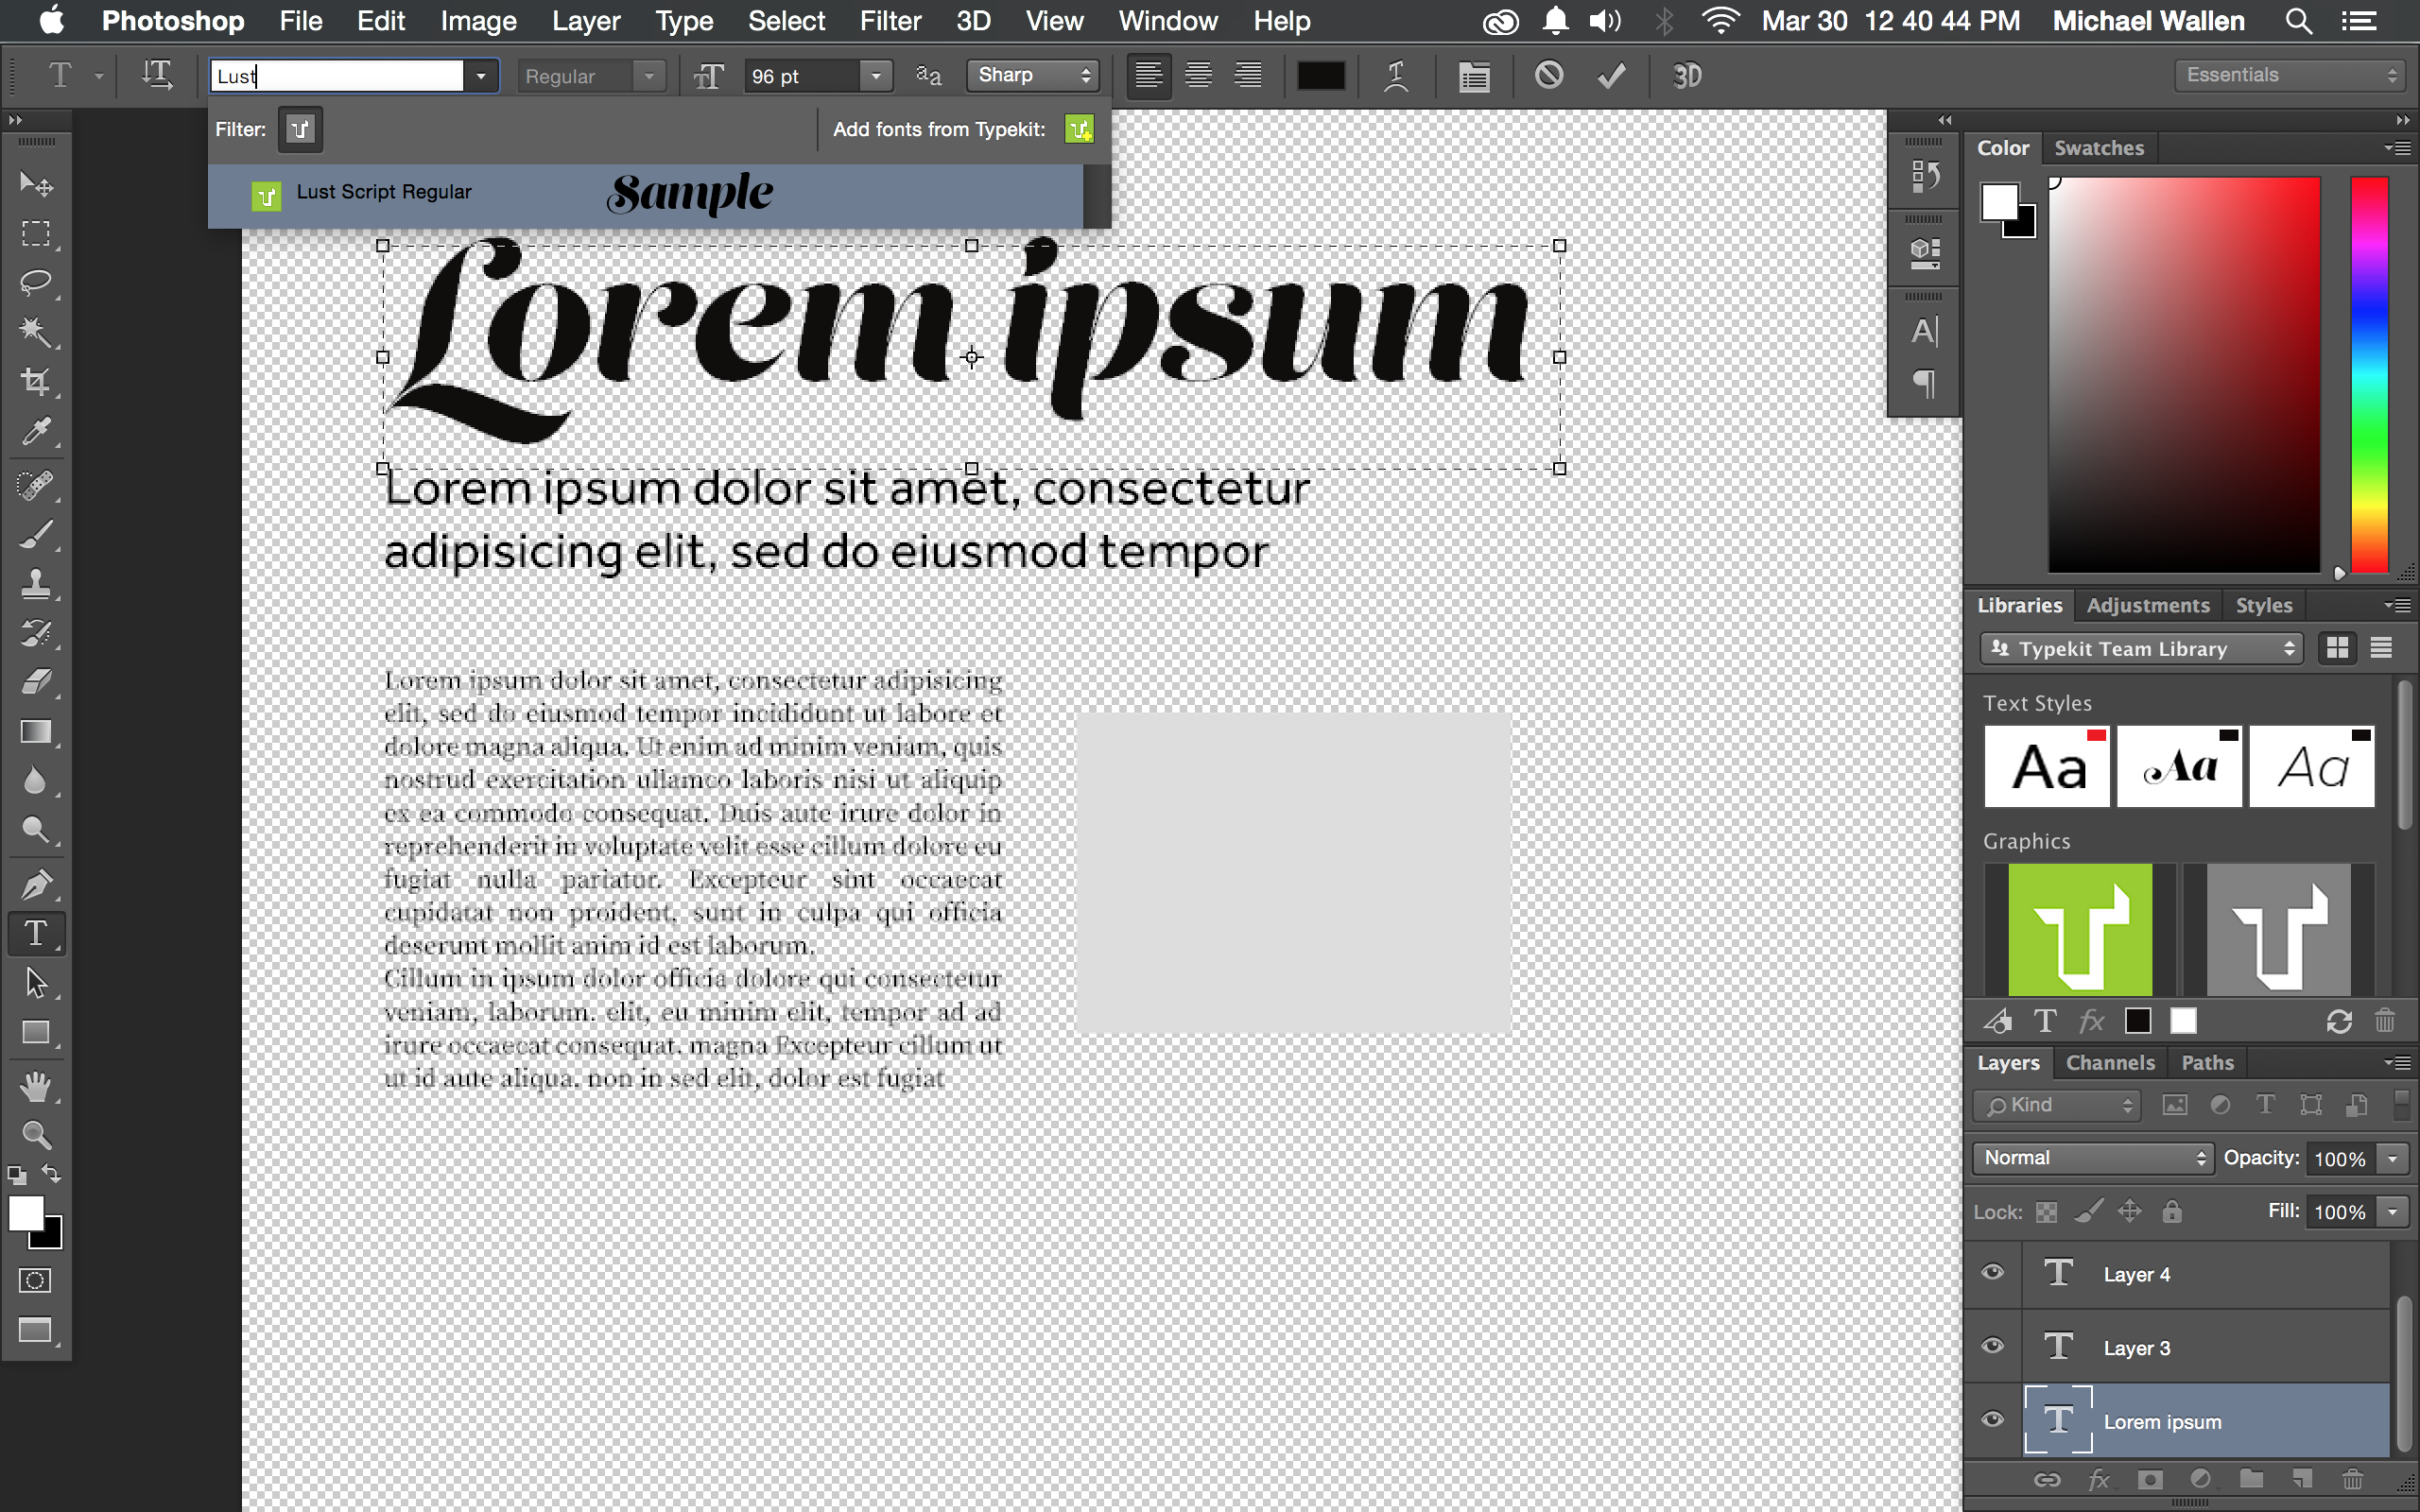 Fonts and layout in Photoshop after sending from Comp CC